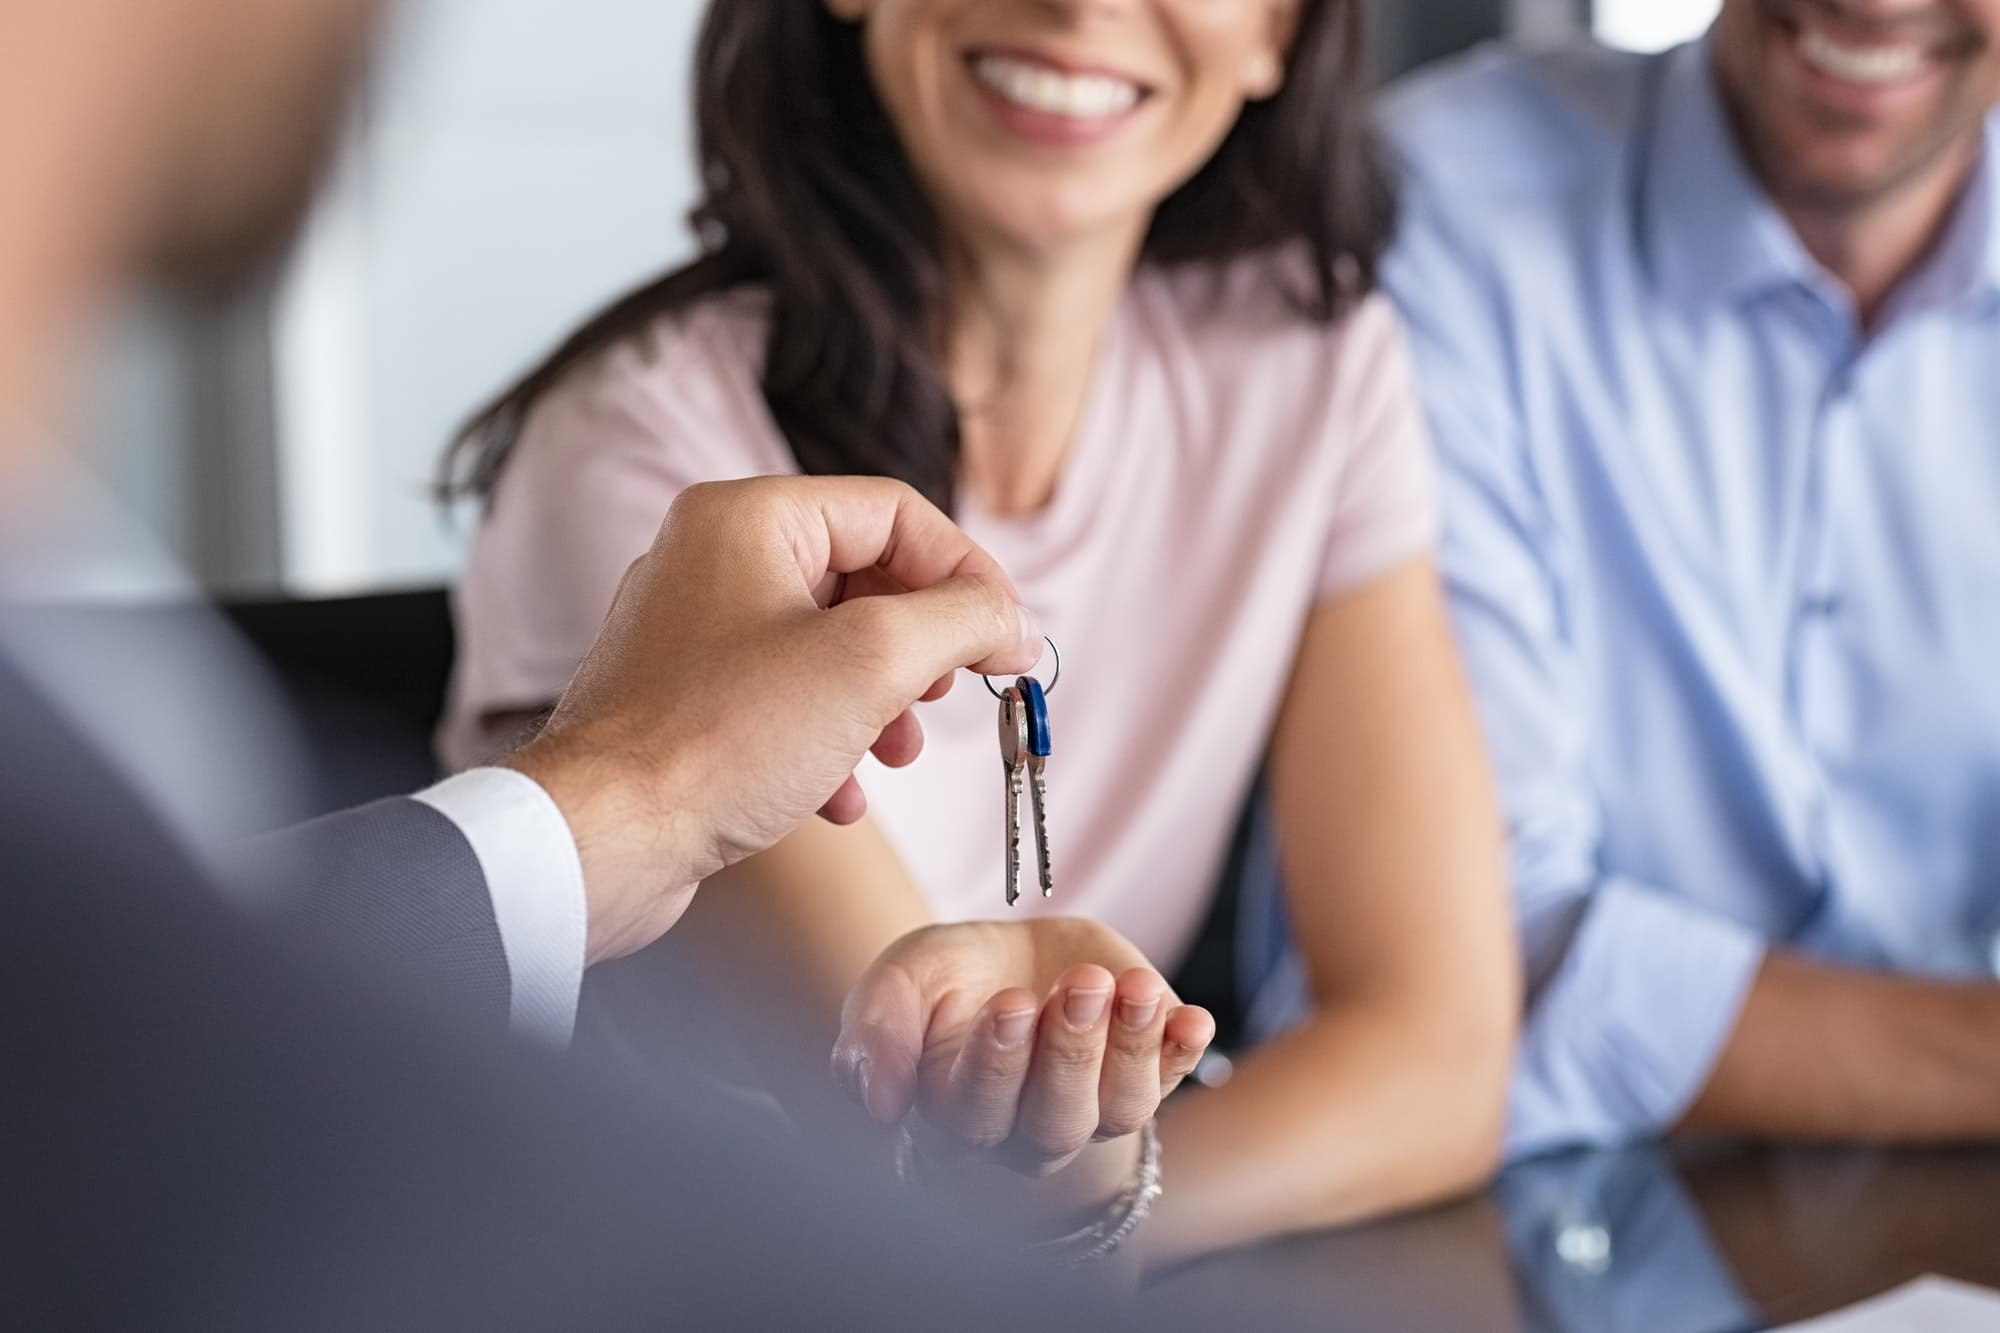 Real estate agent giving house keys to woman